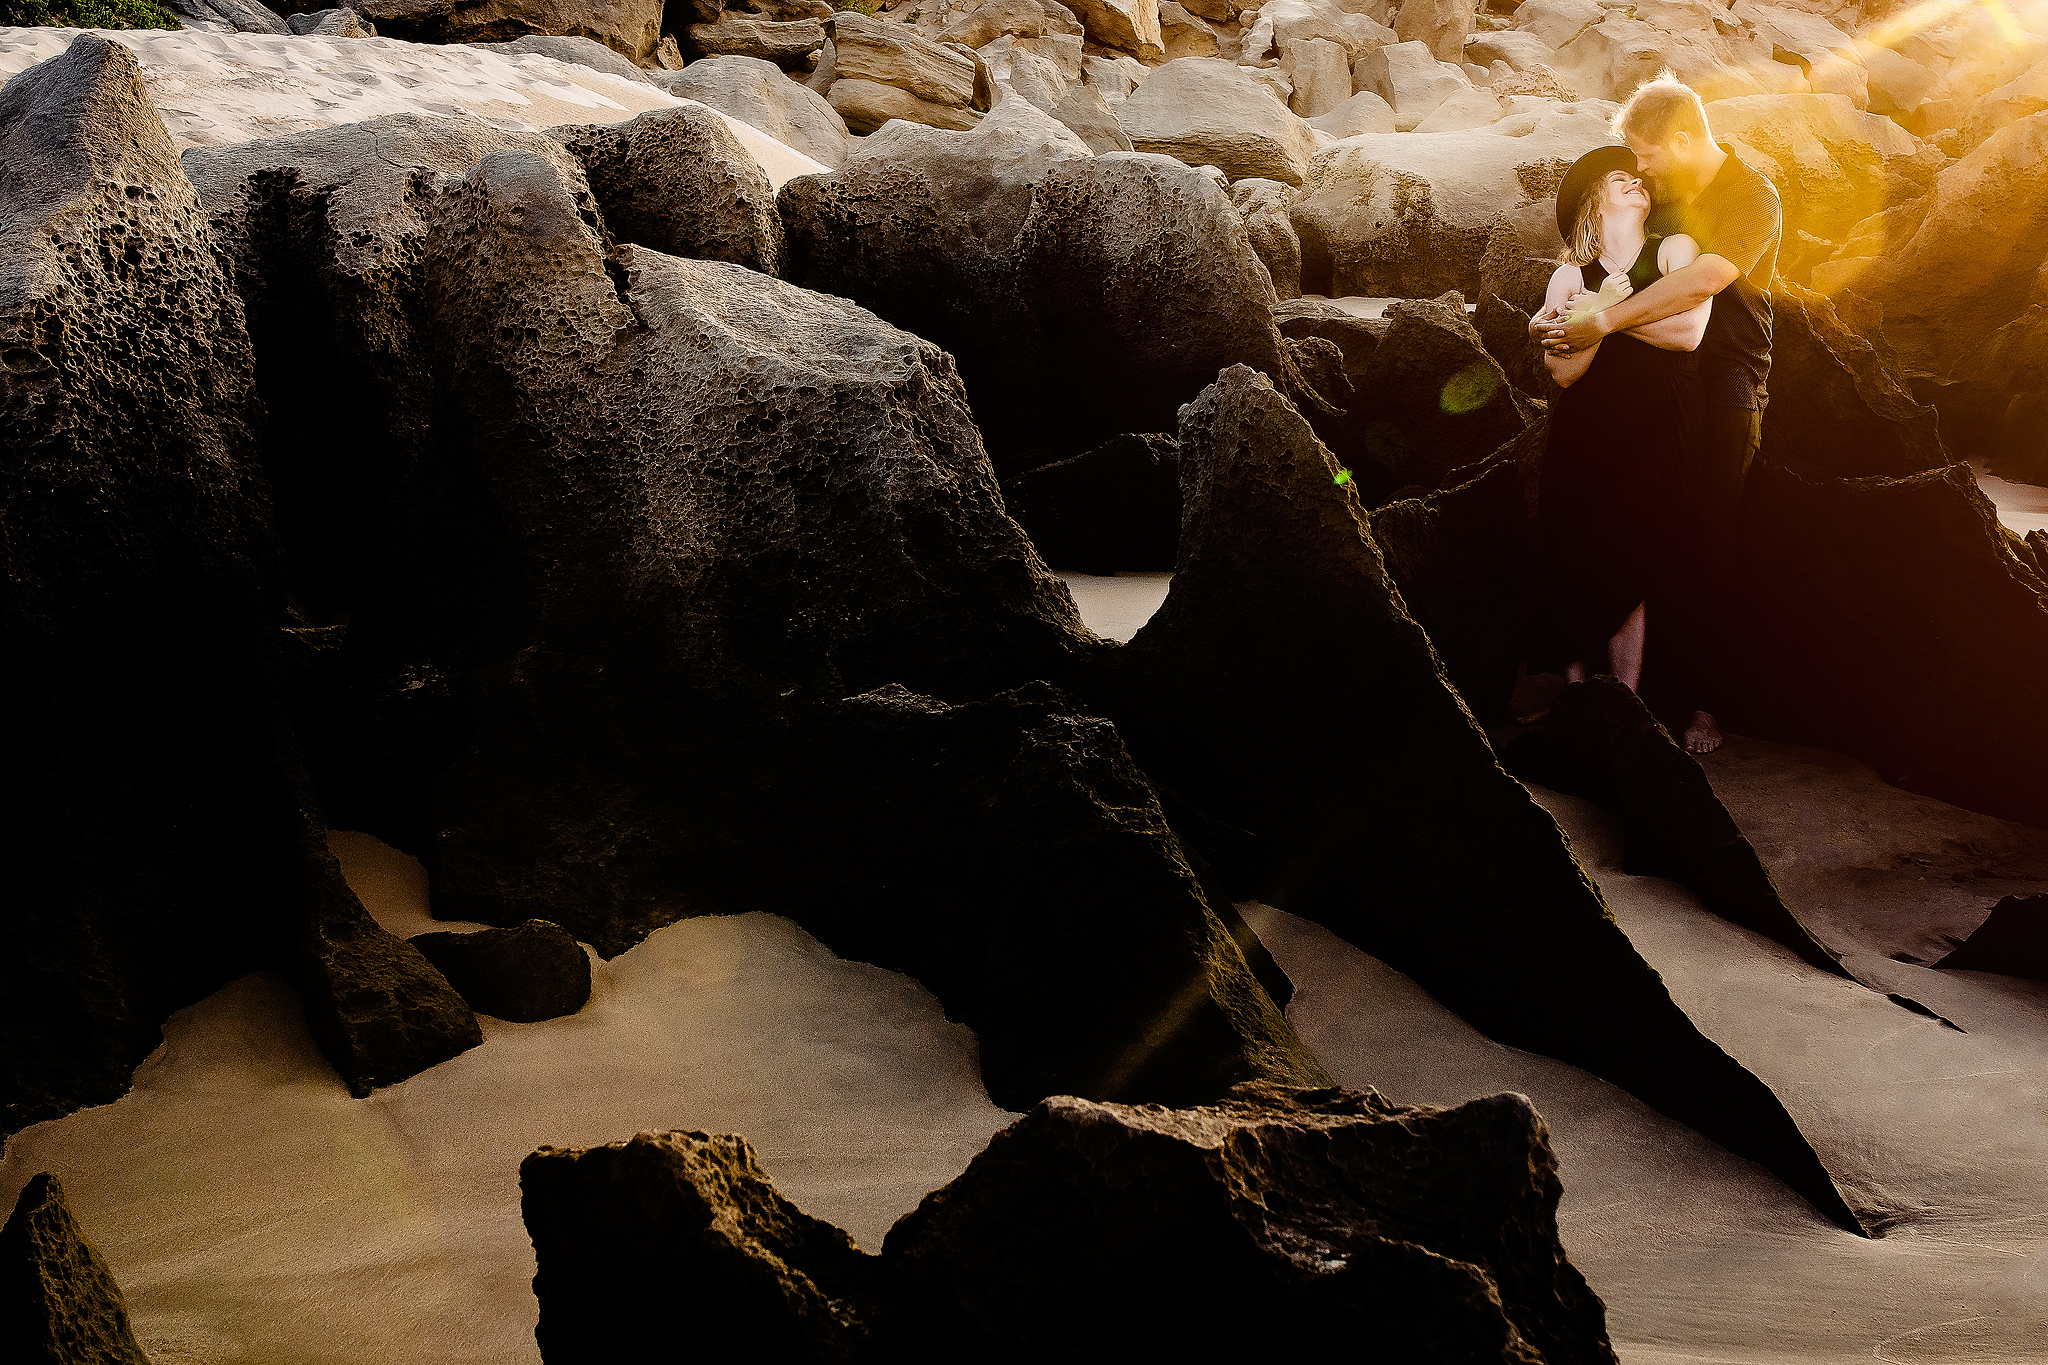 Engagement portrait among unusual rock formations on sand - photo by Ruan Redelinghuys Photography